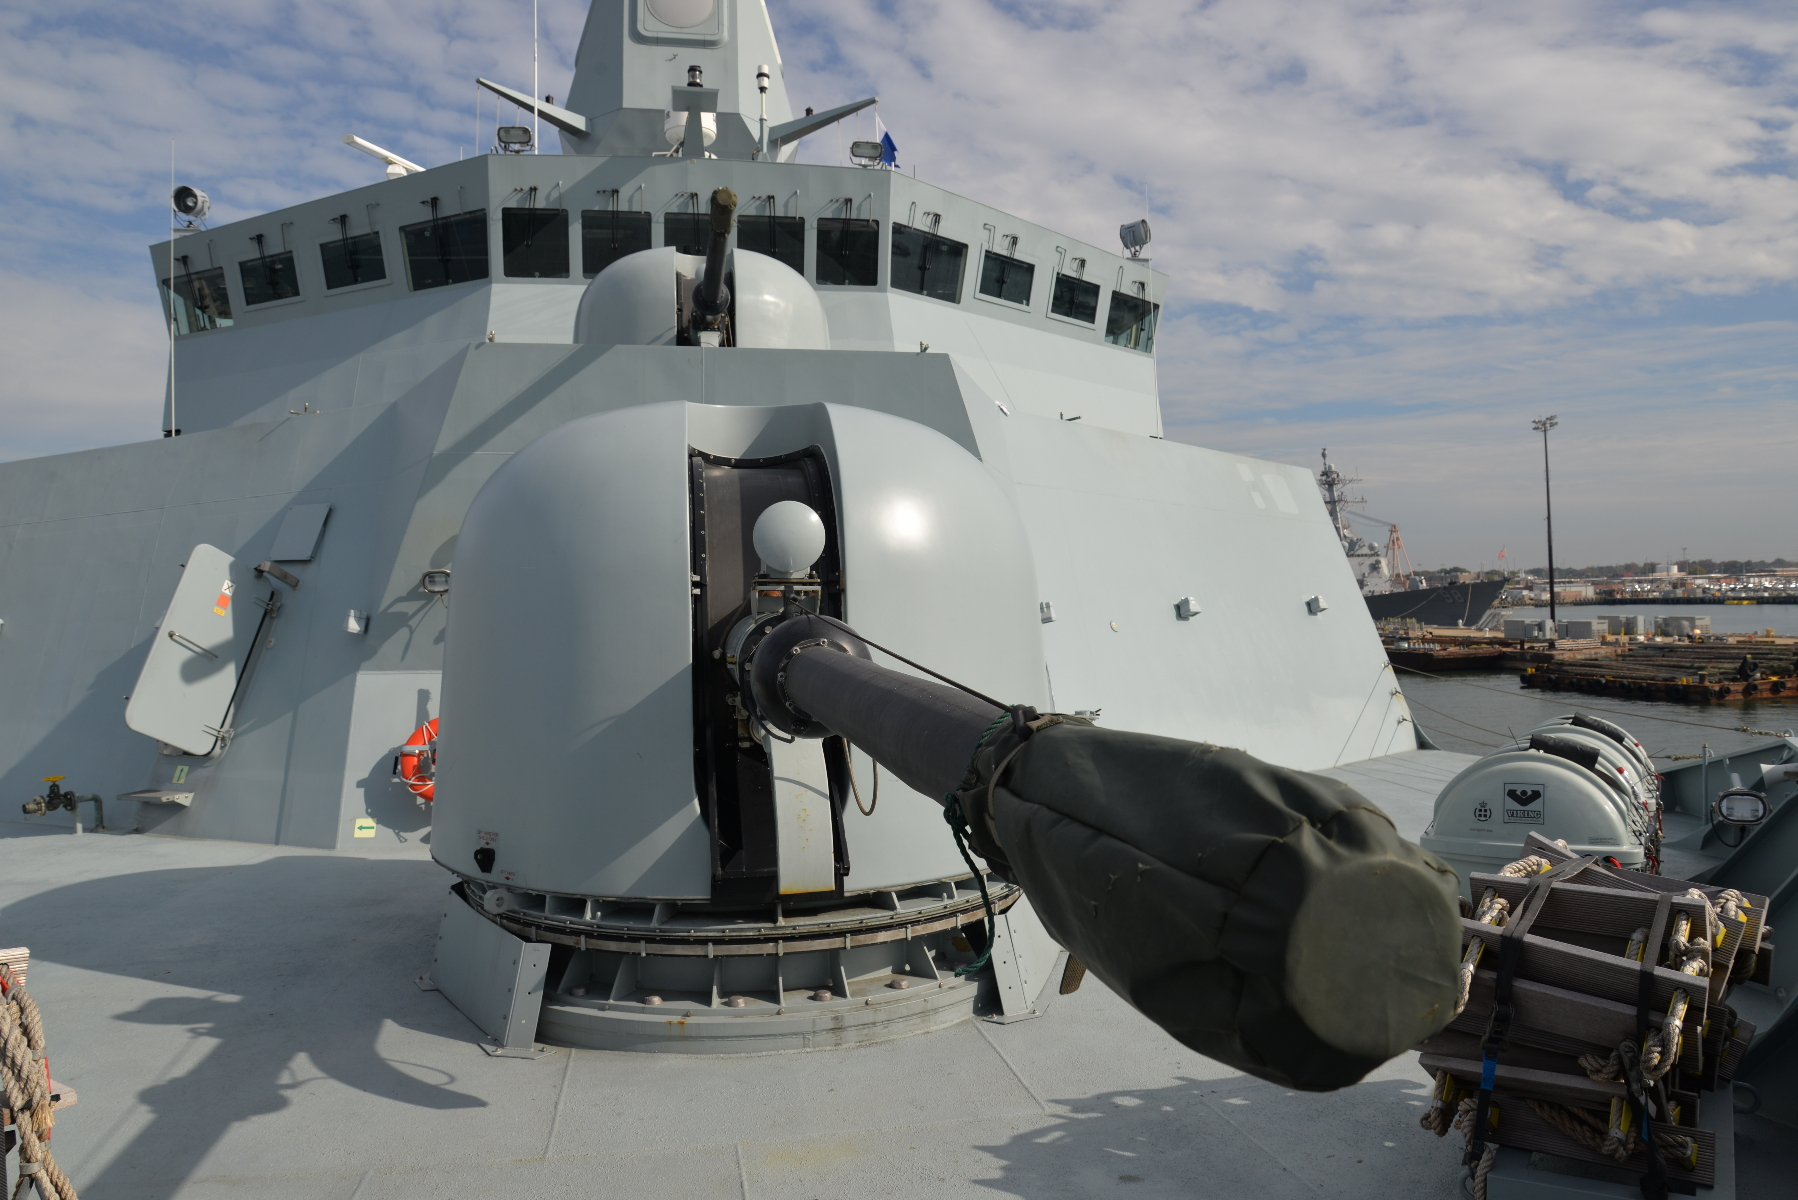 Two Italian-made 76mm Oto Melara guns are fitted forward -- unusually for post-World War II ships, in a super-firing arrangement (one over the other). The guns are reconditioned units from decommissioned patrol ships. The base ring for the forward mount is sized to take a US-built Mark 45 five-inch gun, but funding for the mount -- at about $50 million each -- has yet to be approved. Eventually, the Danish Navy hopes to install another close-in weapon system in the No. 2 position.